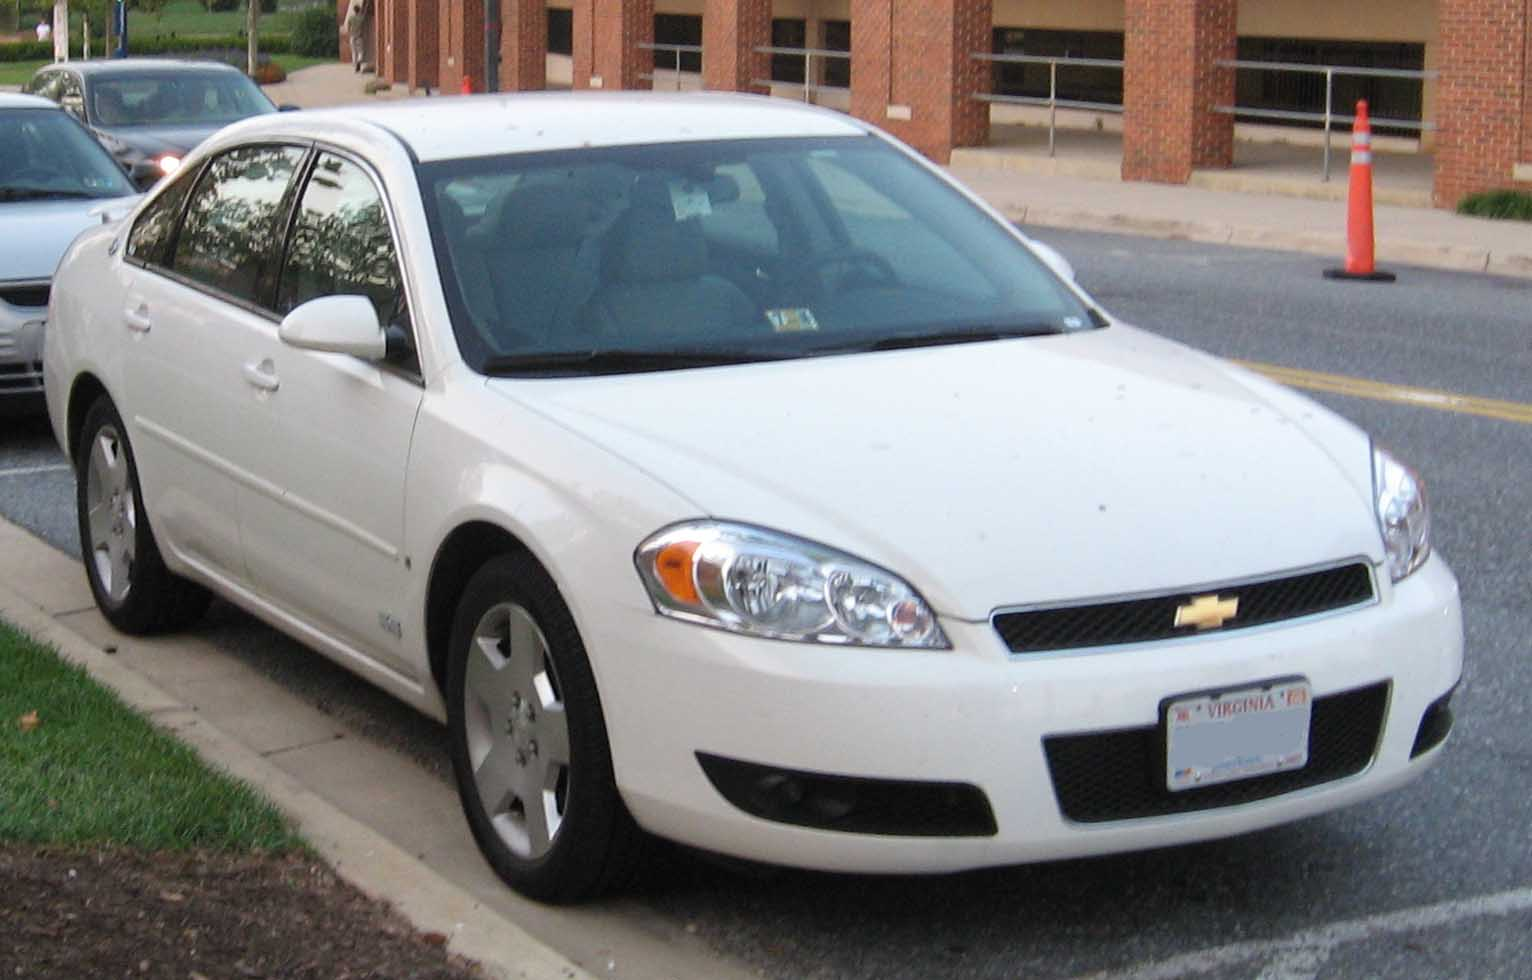 chevrolet monte carlo (w) 2006 images